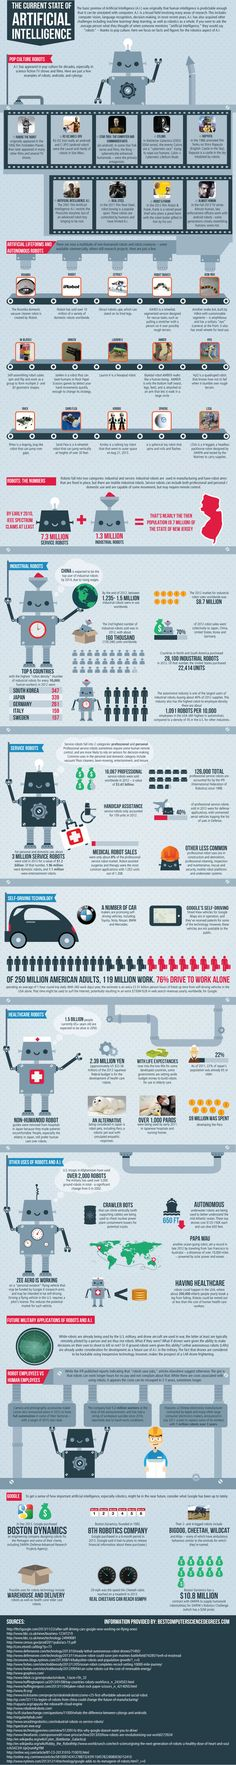 The Current State of Artificial Intelligence ~ infographic - ChrisInMaryville's Blog